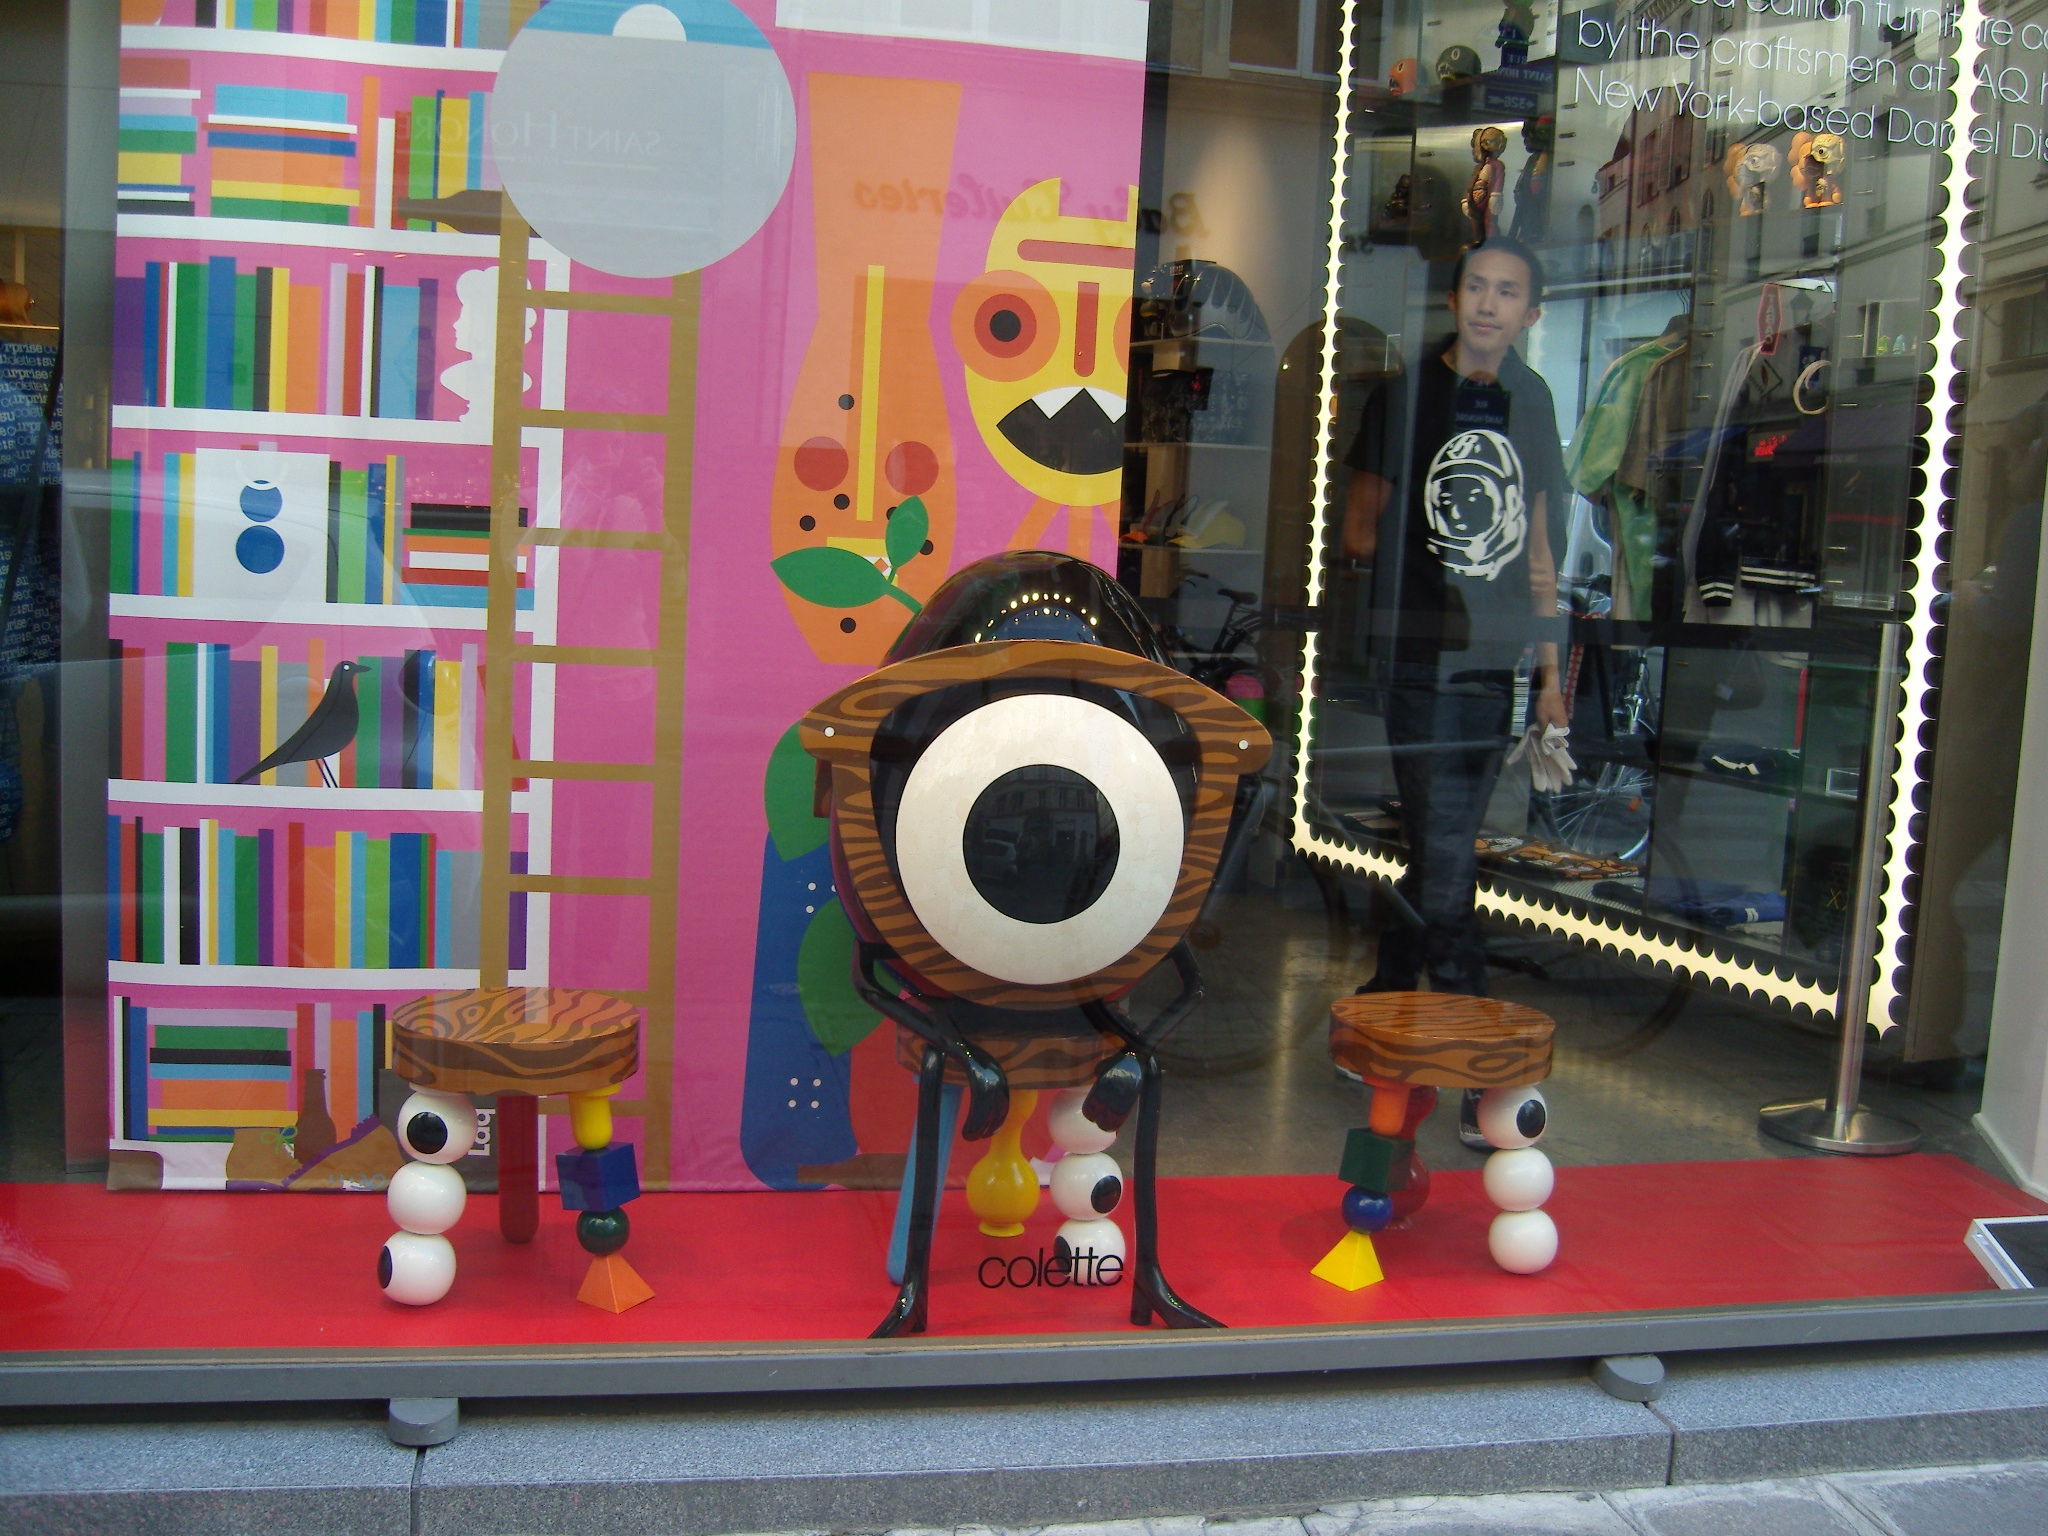 Window display at Colette in Paris. Photo by alphacityguides.